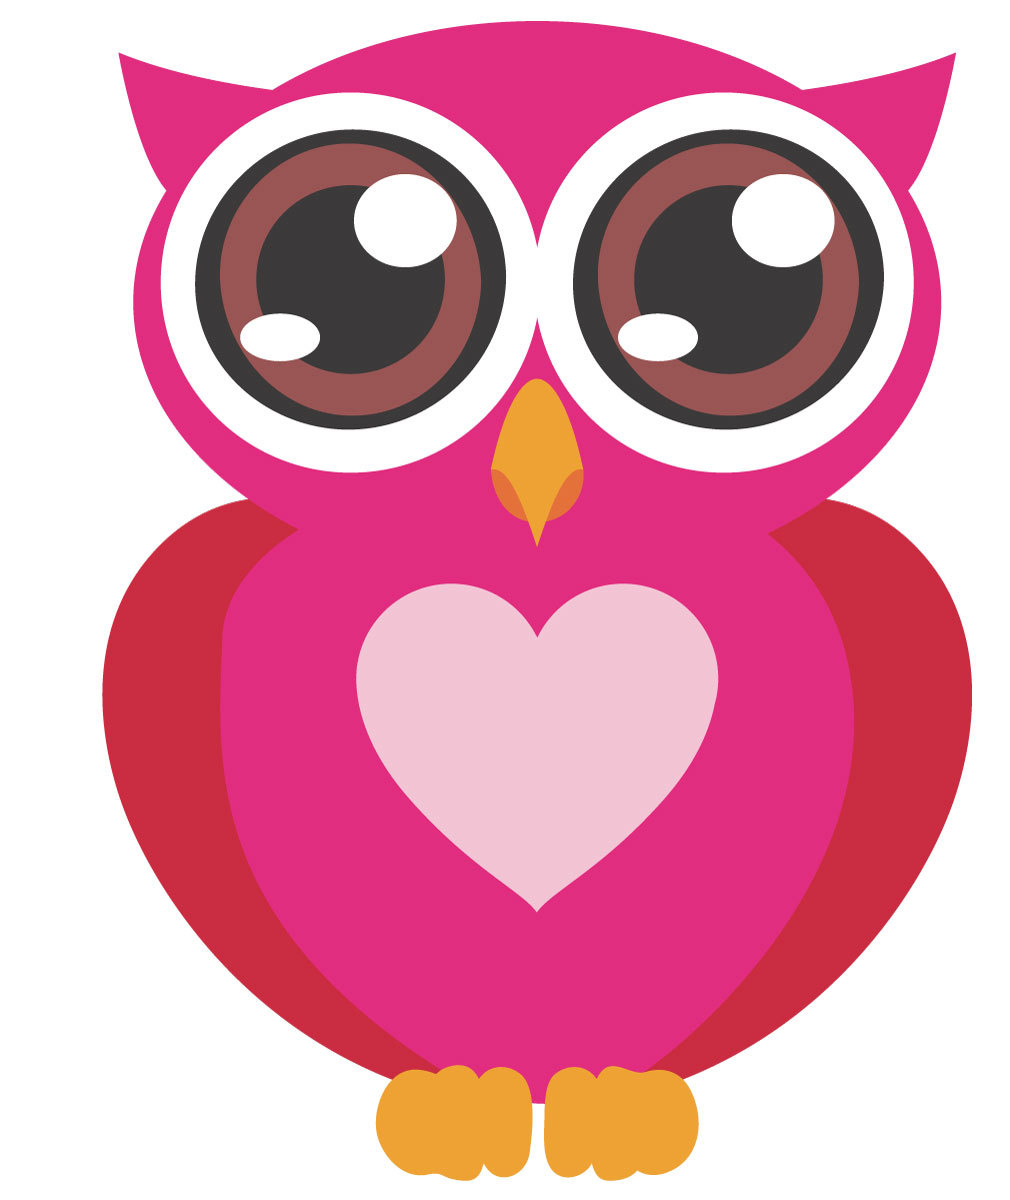 Blue Eyes clipart beautiful eye On com owls 3 and